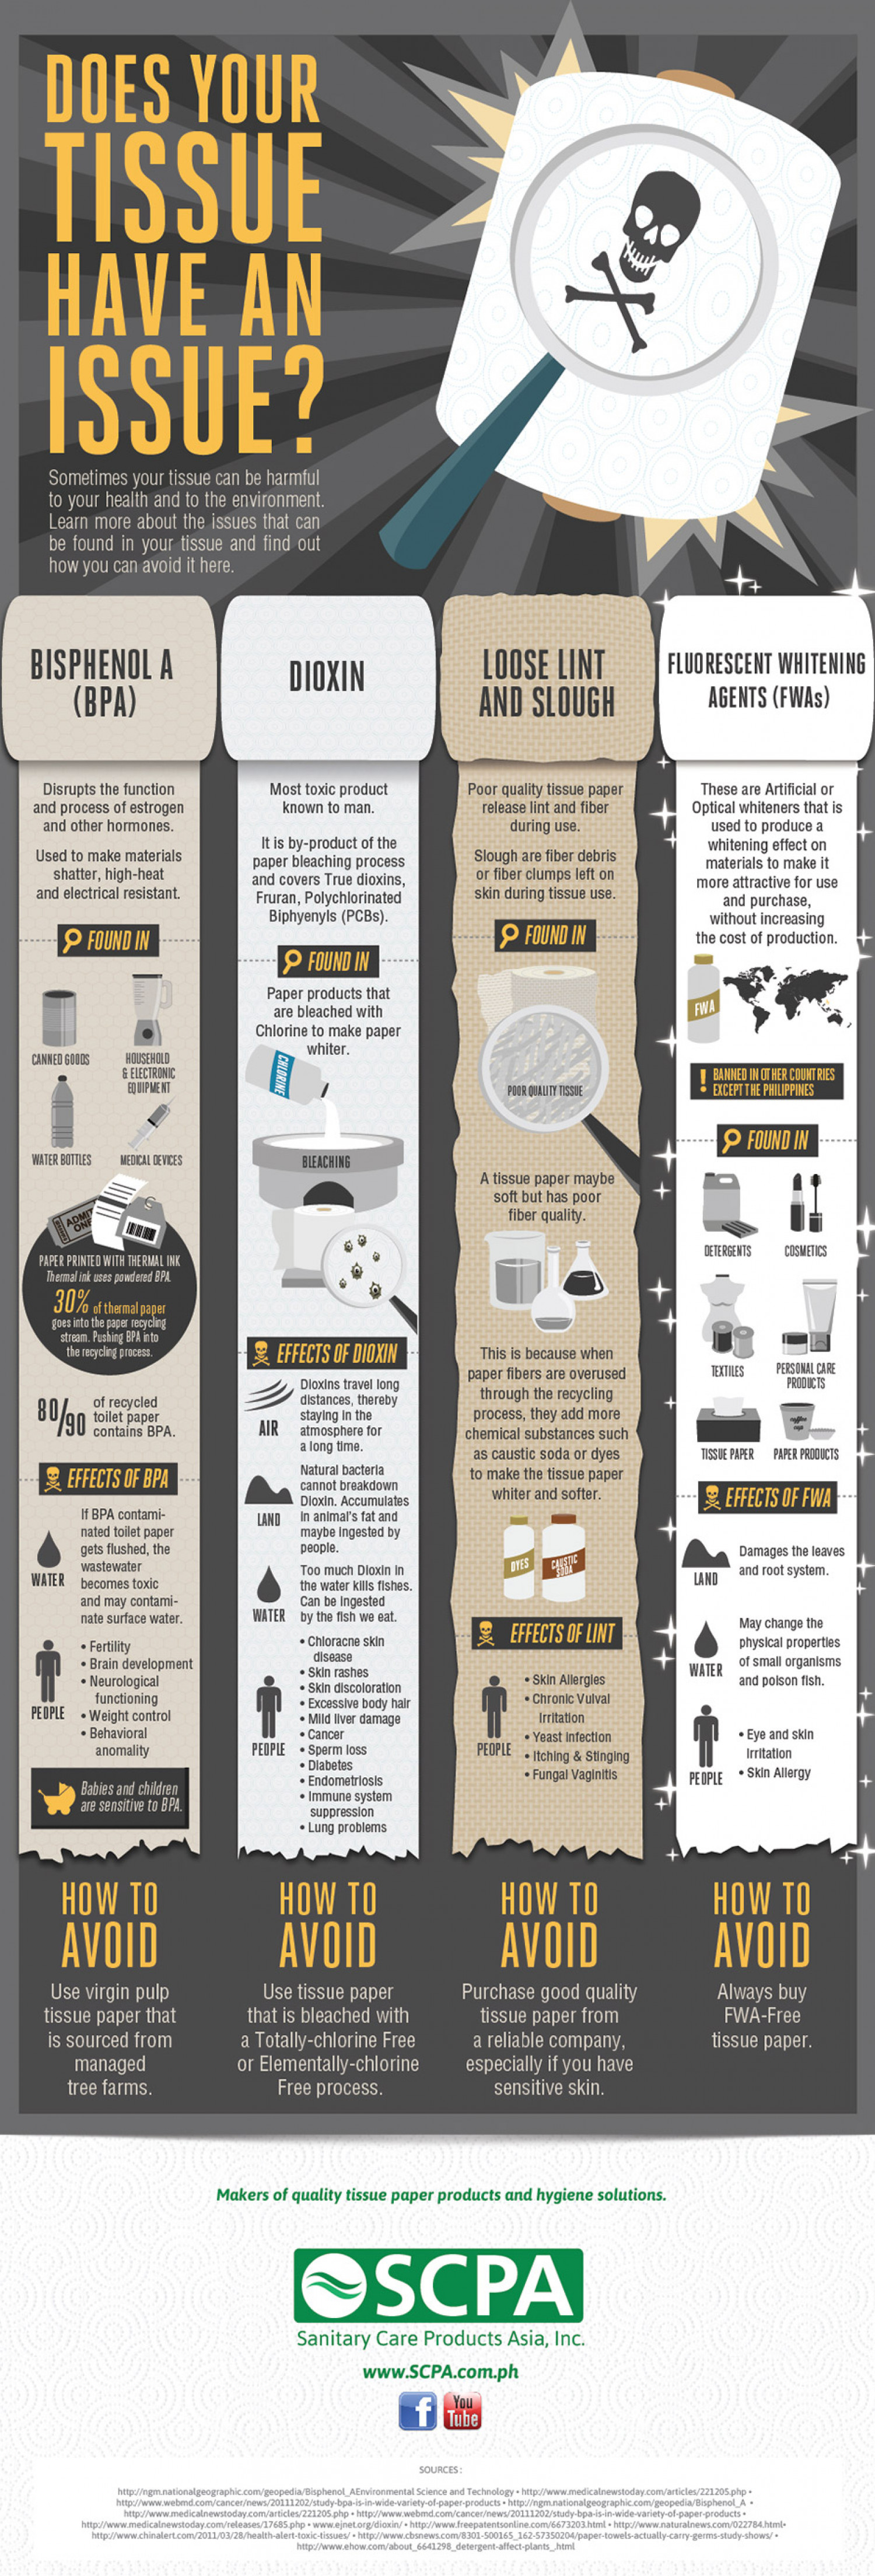 Does your Tissue Have an Issue? SCPA Sanitary Care Products Asia, Inc. Infographic